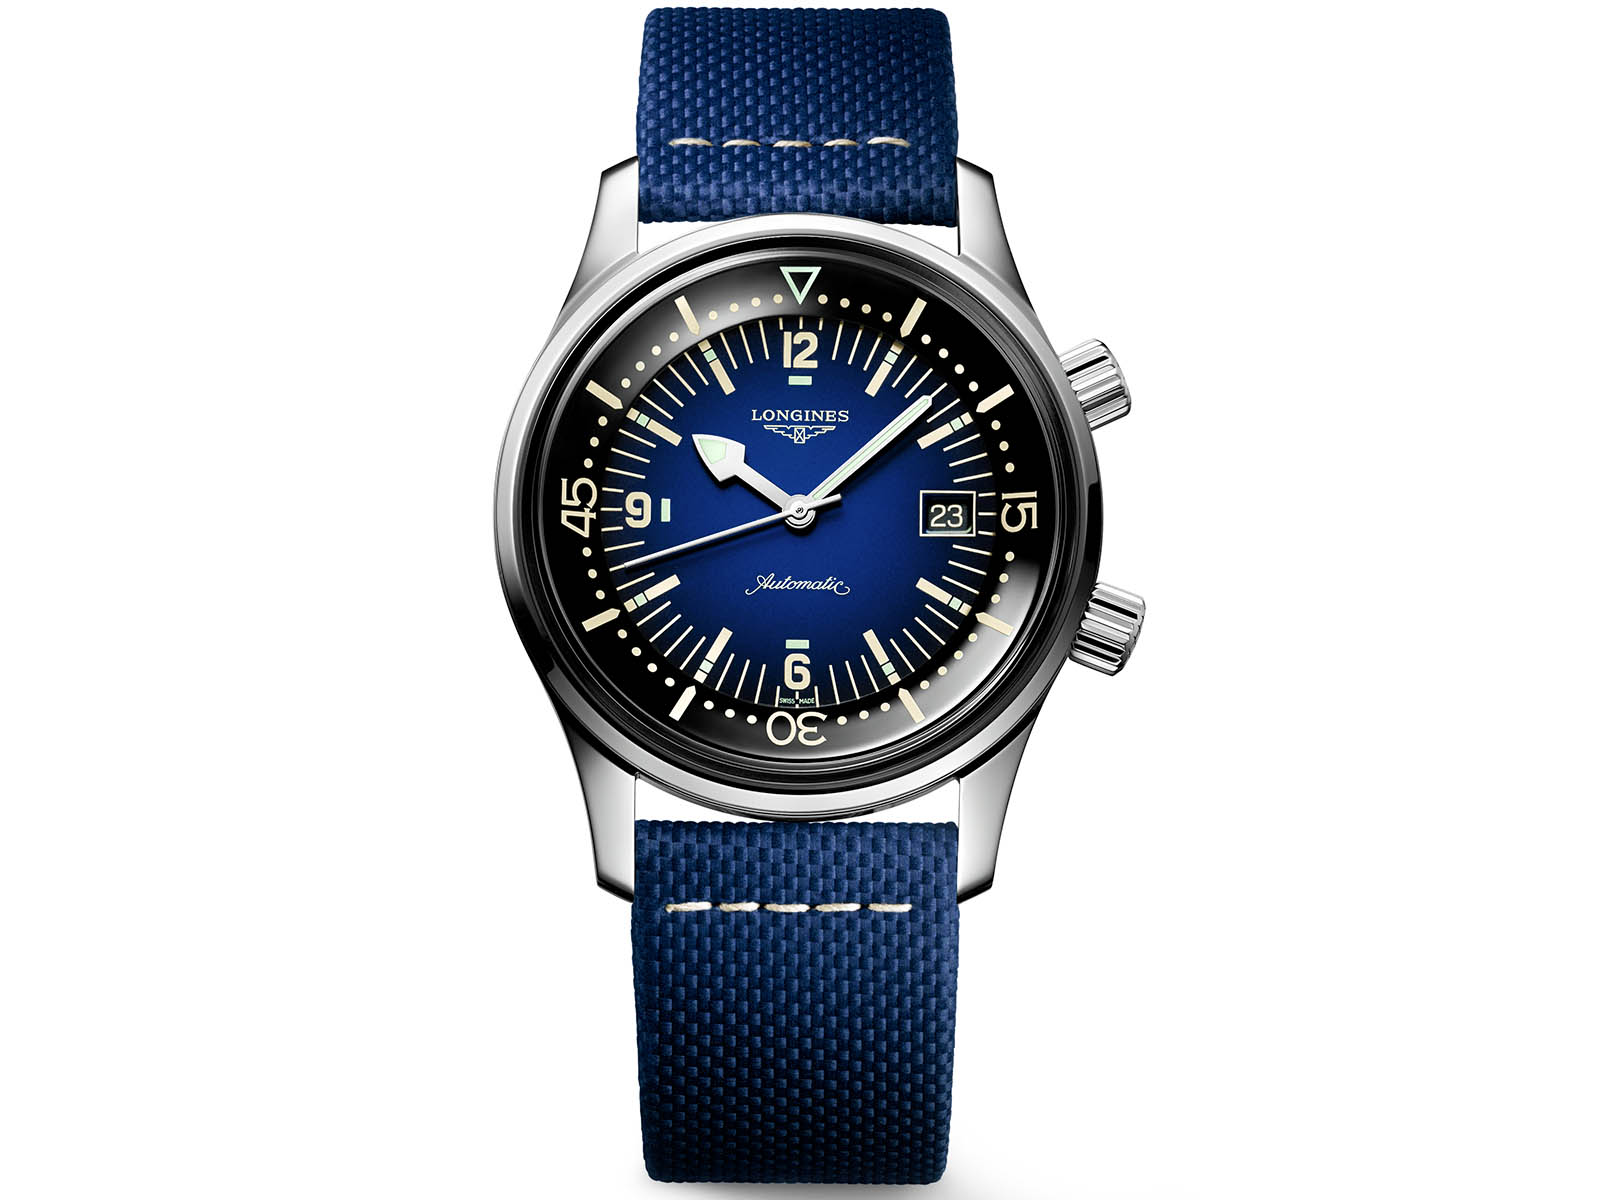 l3-774-4-90-2-longines-legend-diver-new-dial-colors-4.jpg